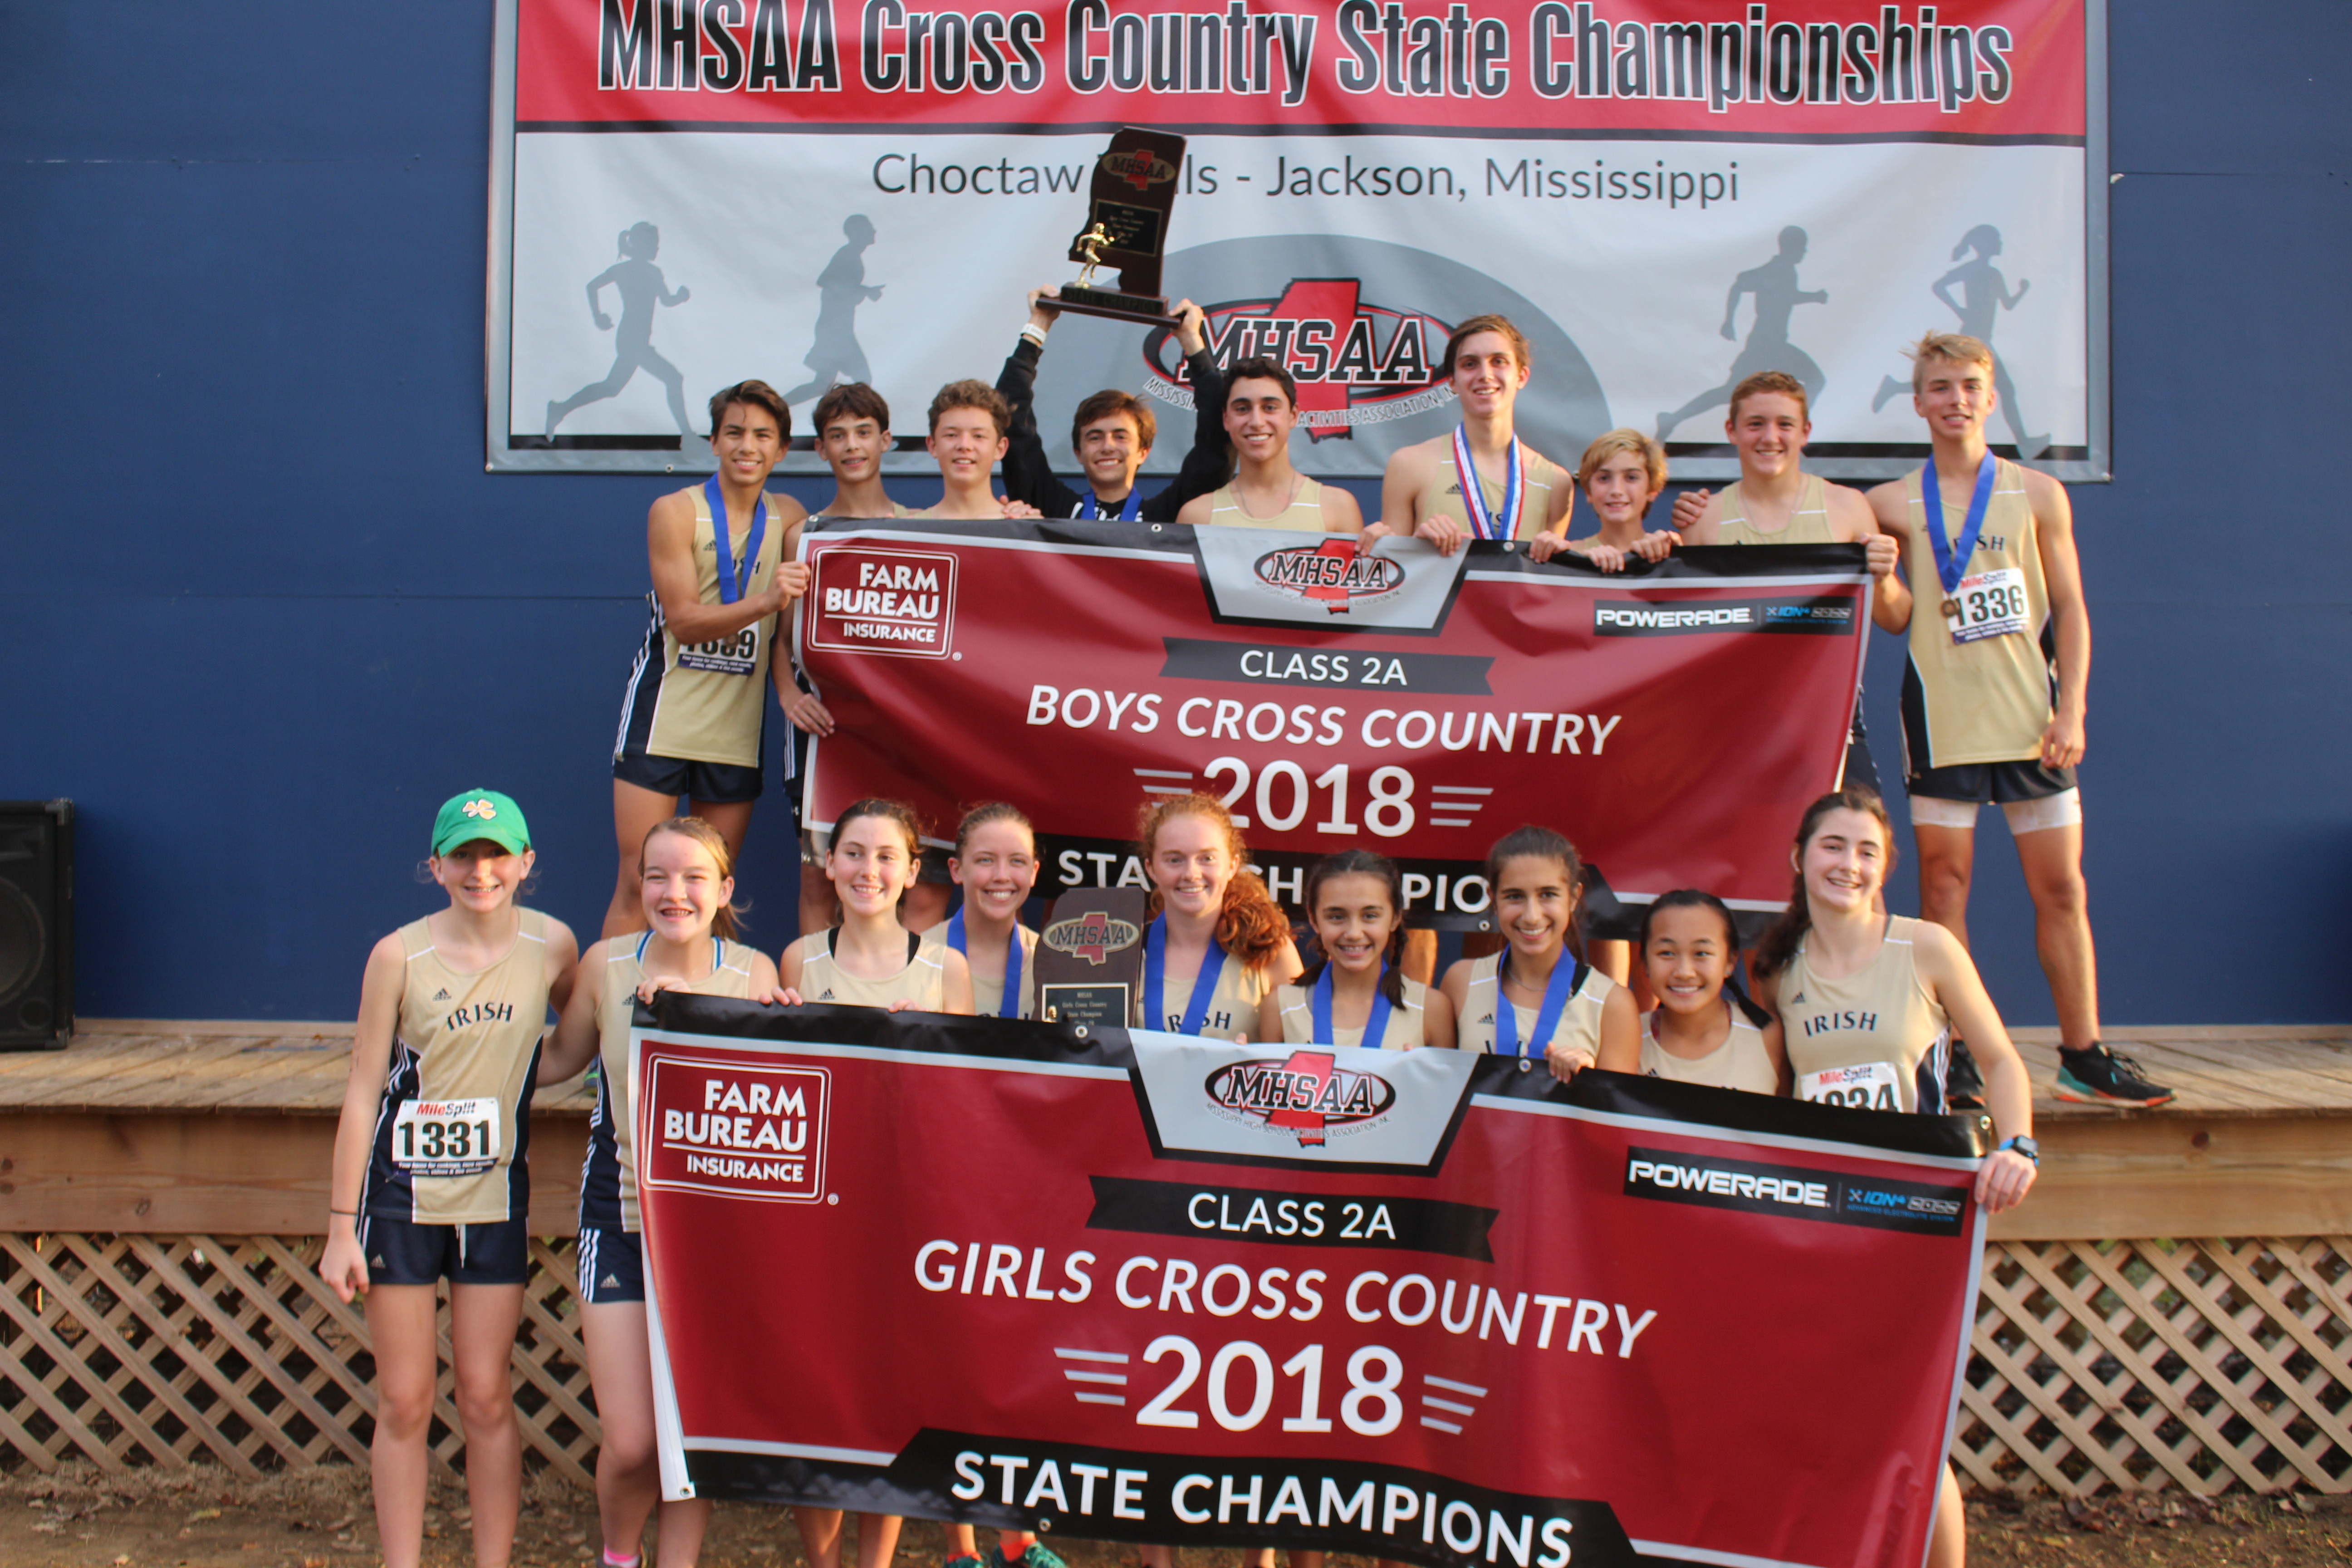 Both St. Patrick Cross Country teams secure 2018 MHSAA state titles